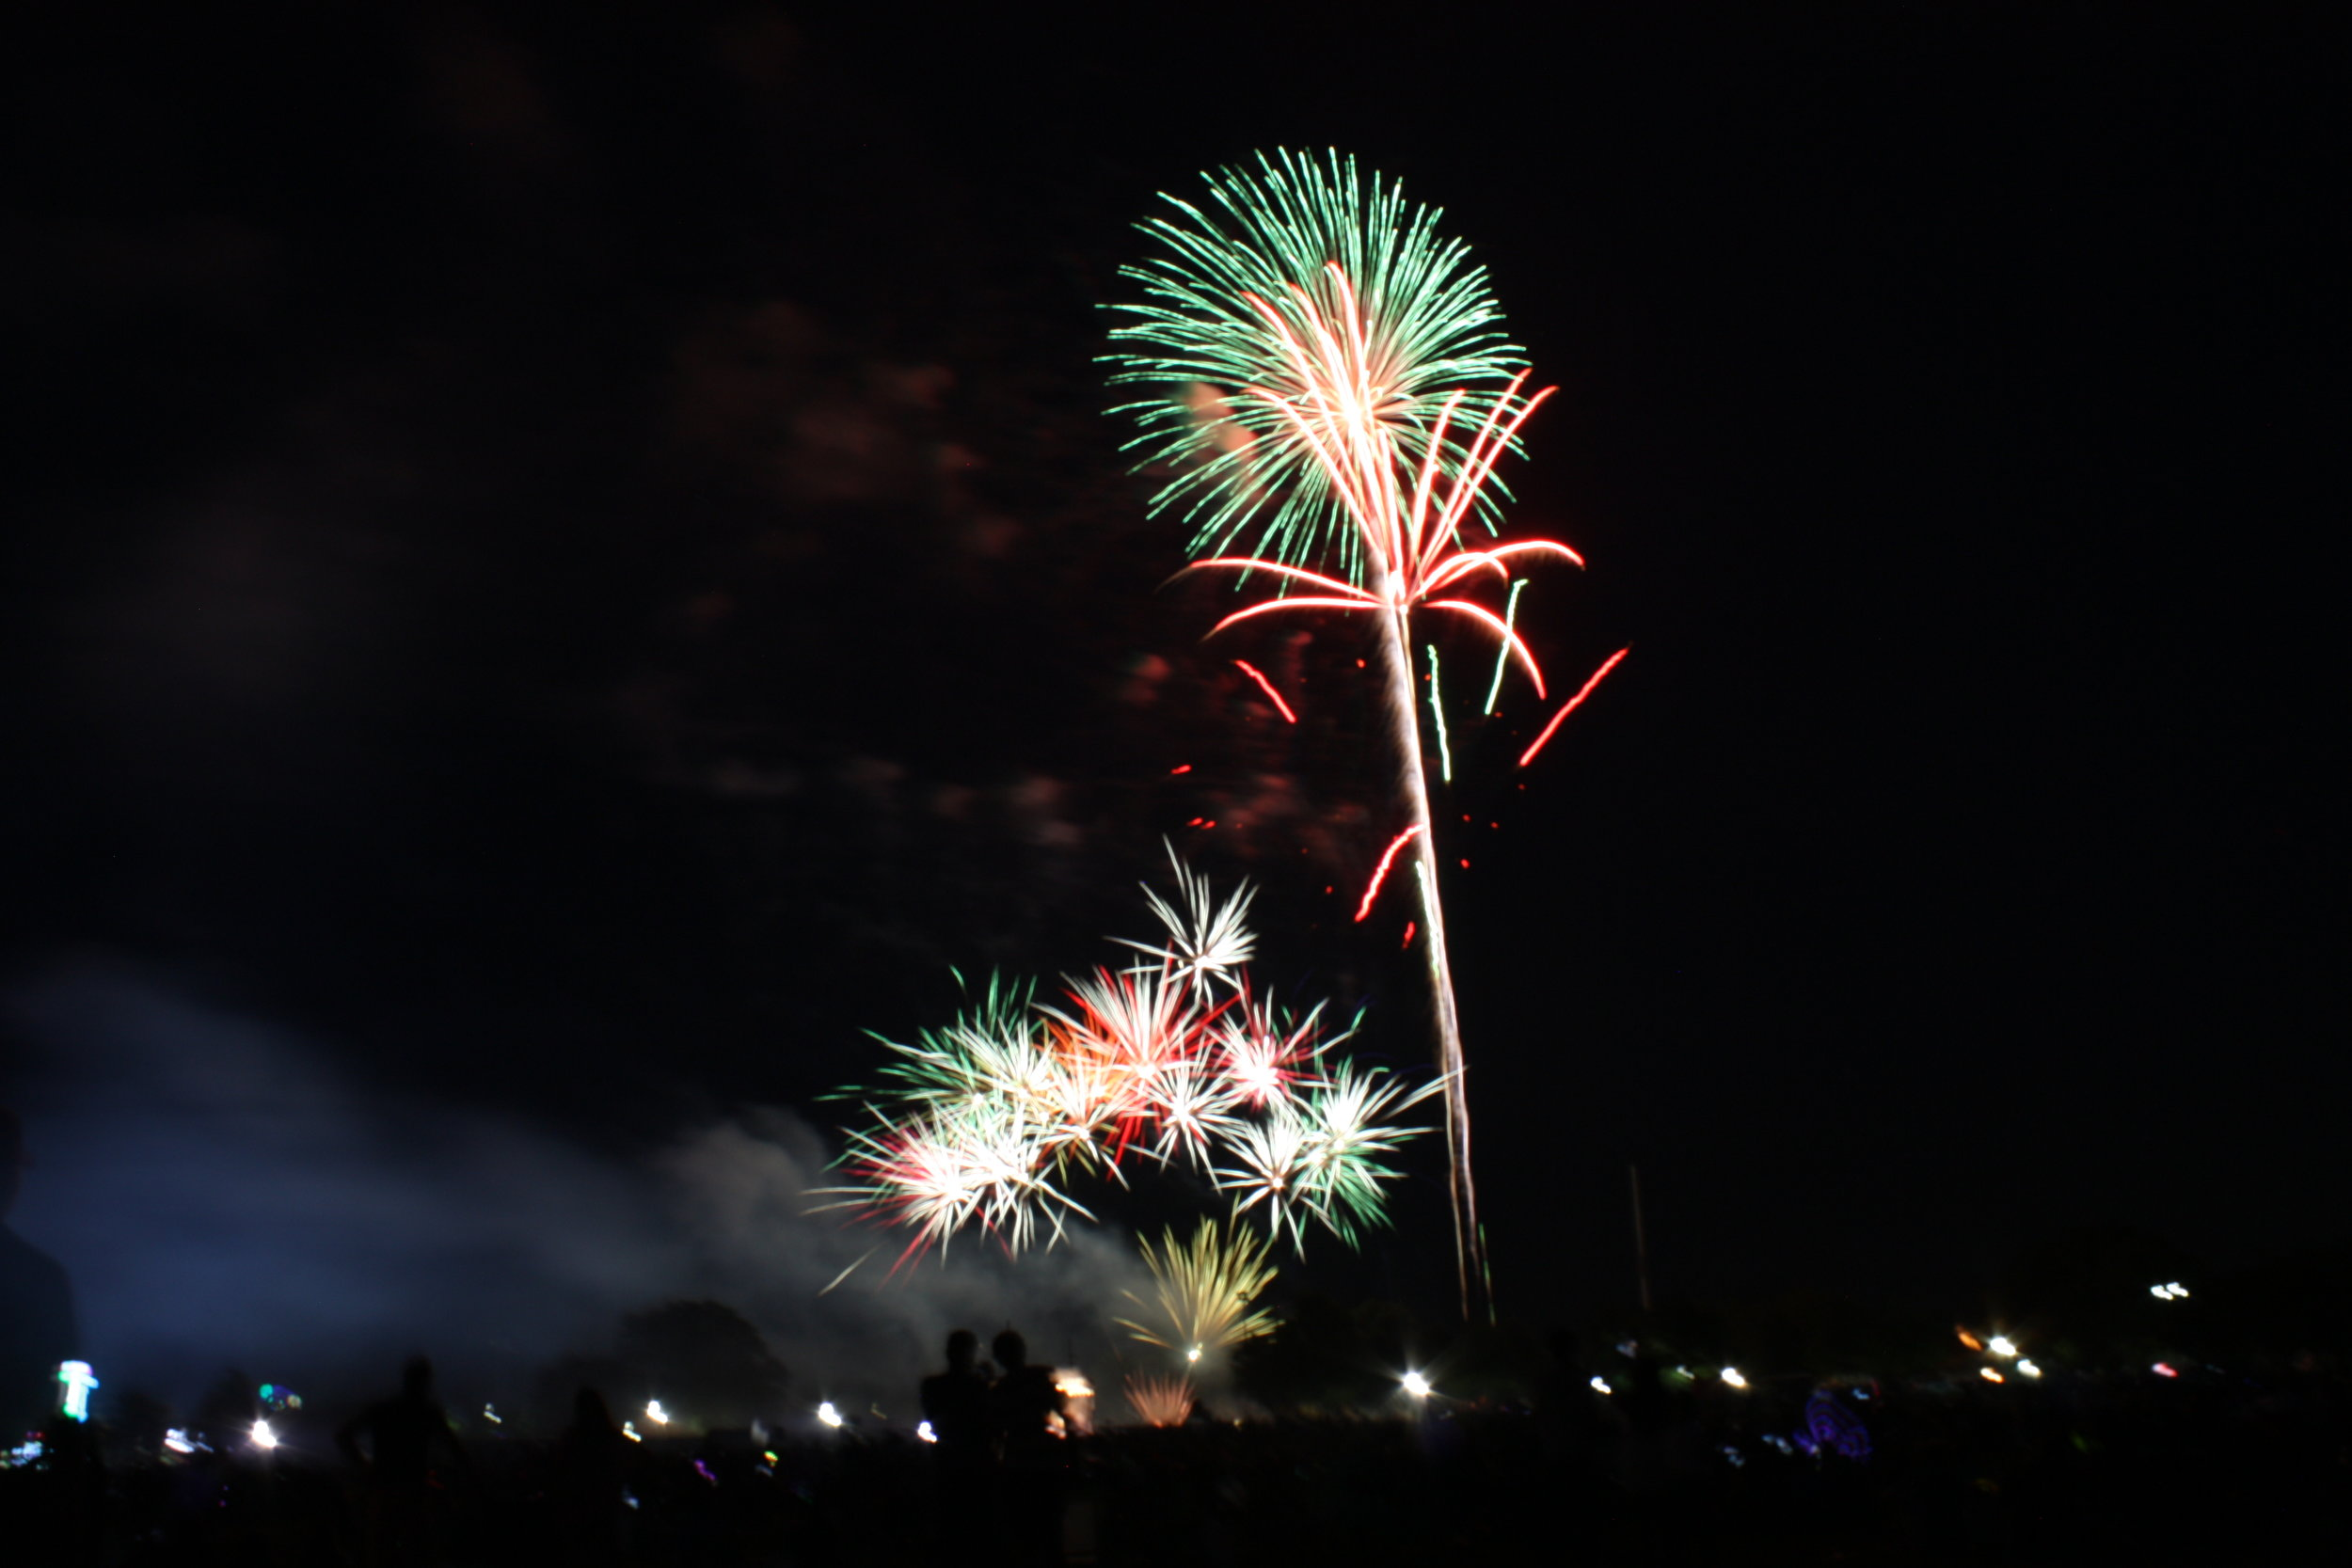 July 4th fireworks at Harbor Island 2019